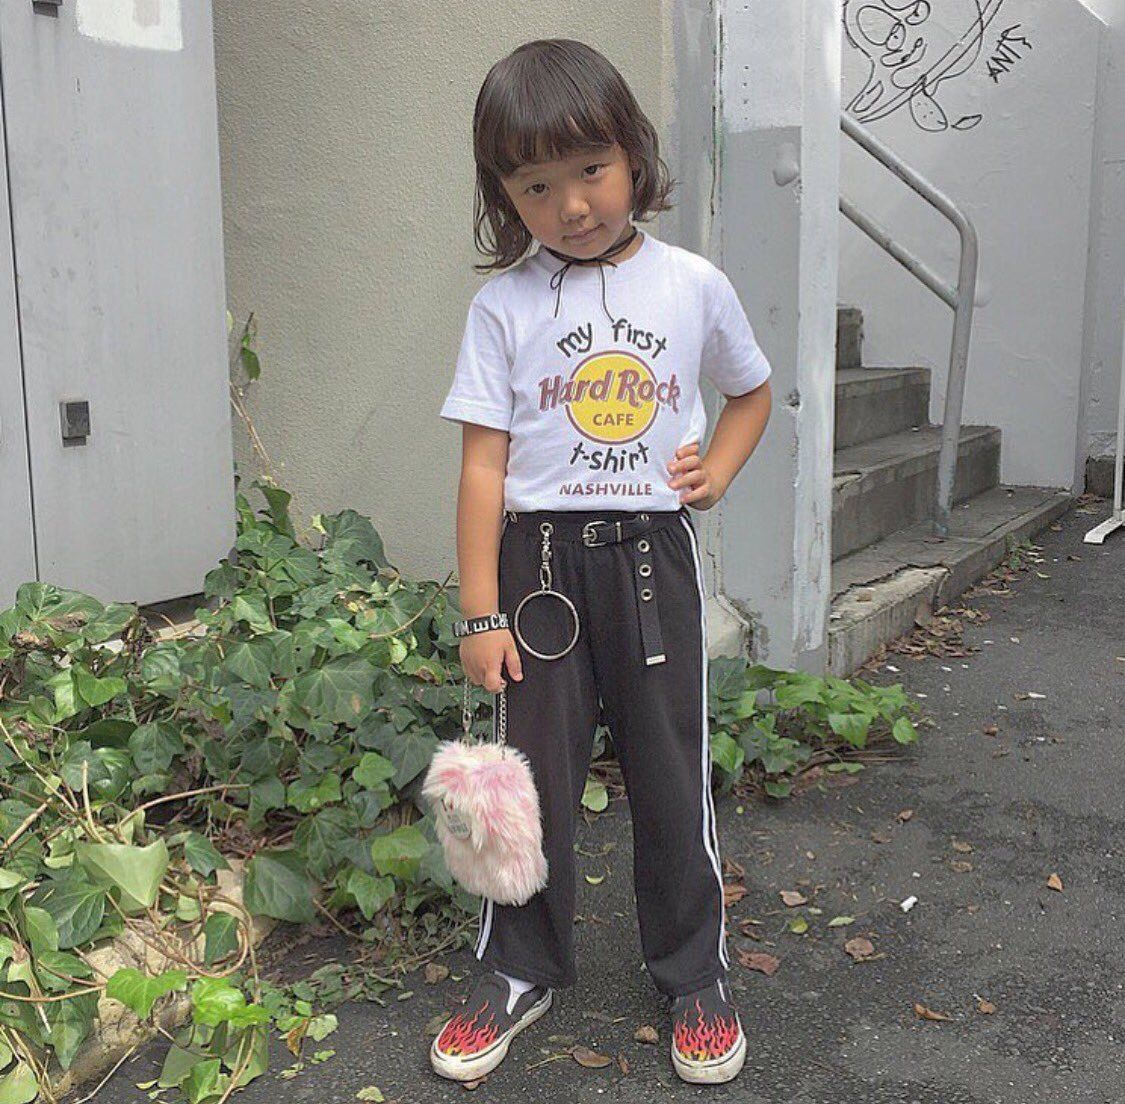 Meet Coco, the 6-year-old Instagram star taking Tokyos fashion world by storm.